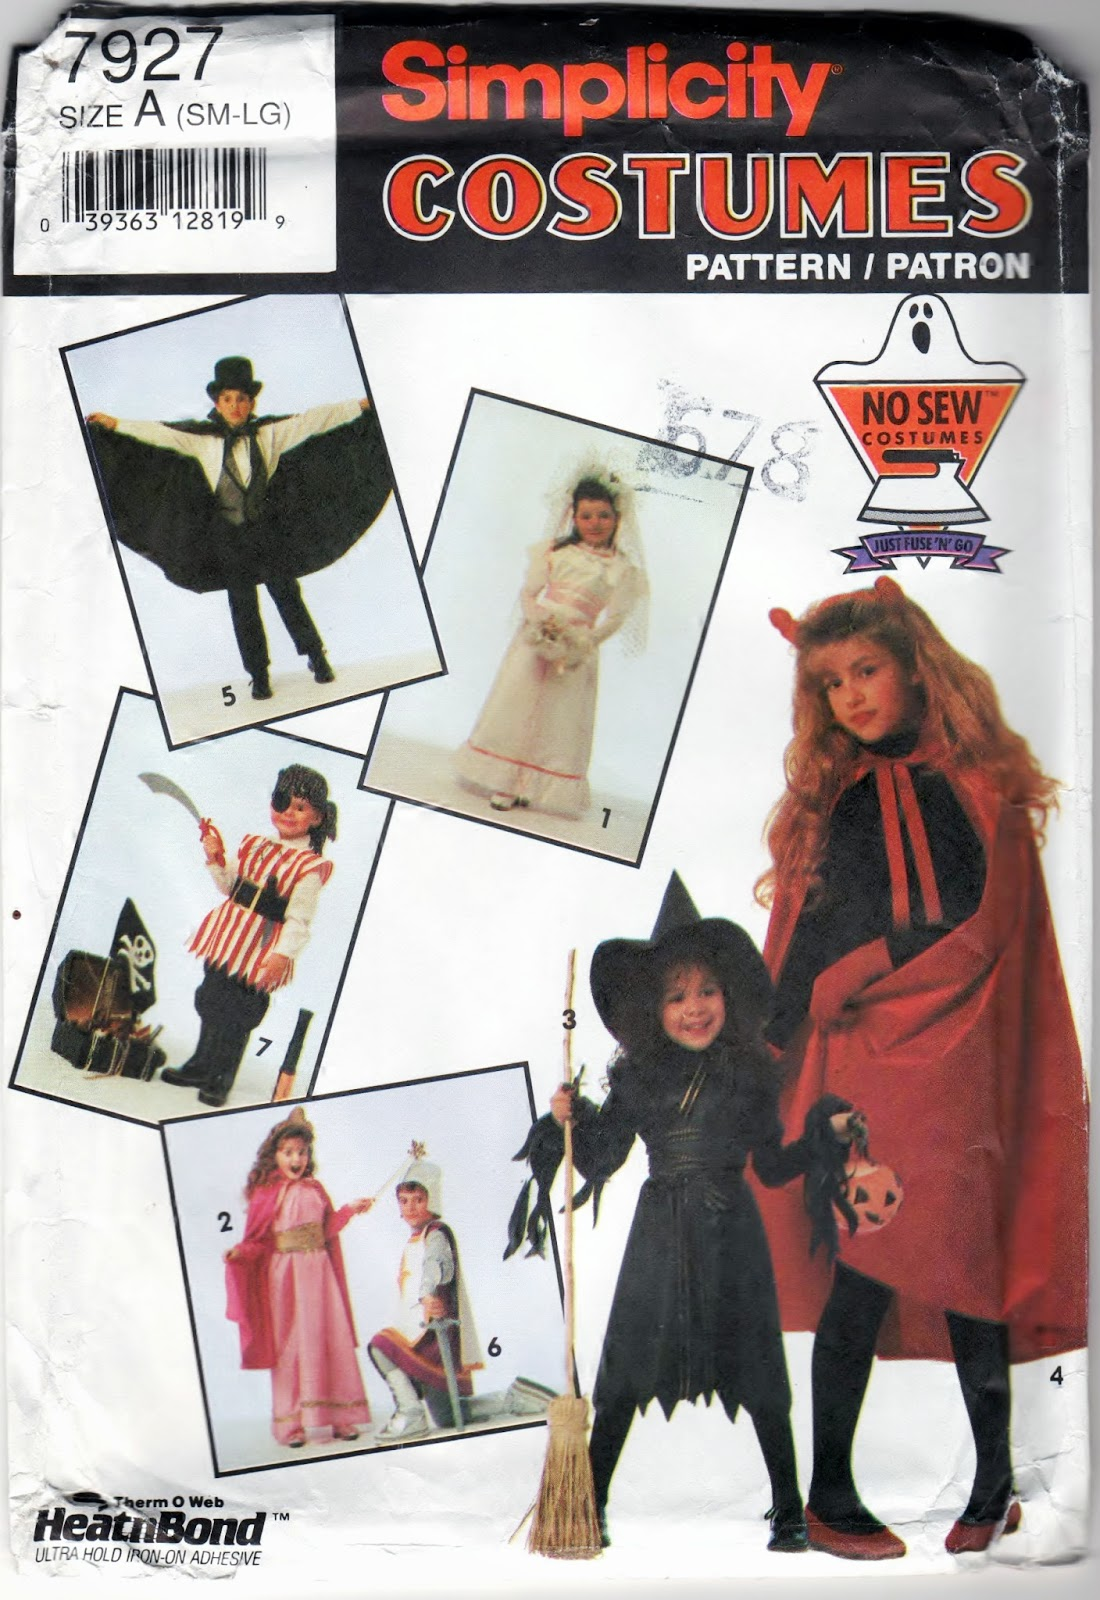 https://www.etsy.com/listing/114477317/costumes-pattern-size-a-sm-lg-uncut